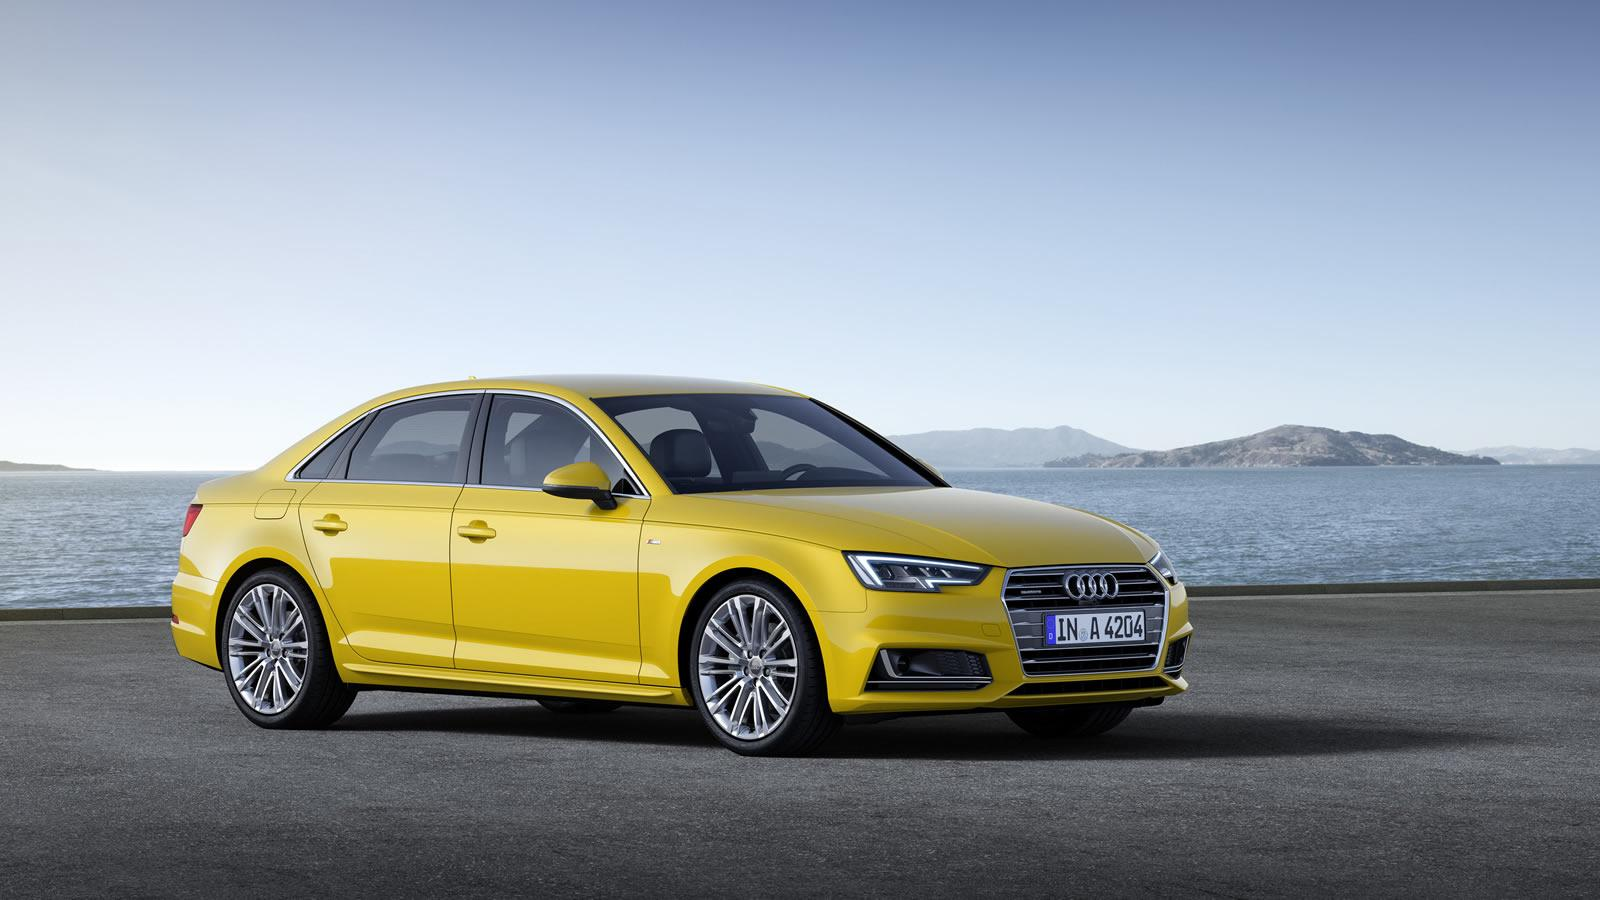 2016 audi a4 sedan revealed with 120 kg weight loss and new engines autoevolution. Black Bedroom Furniture Sets. Home Design Ideas